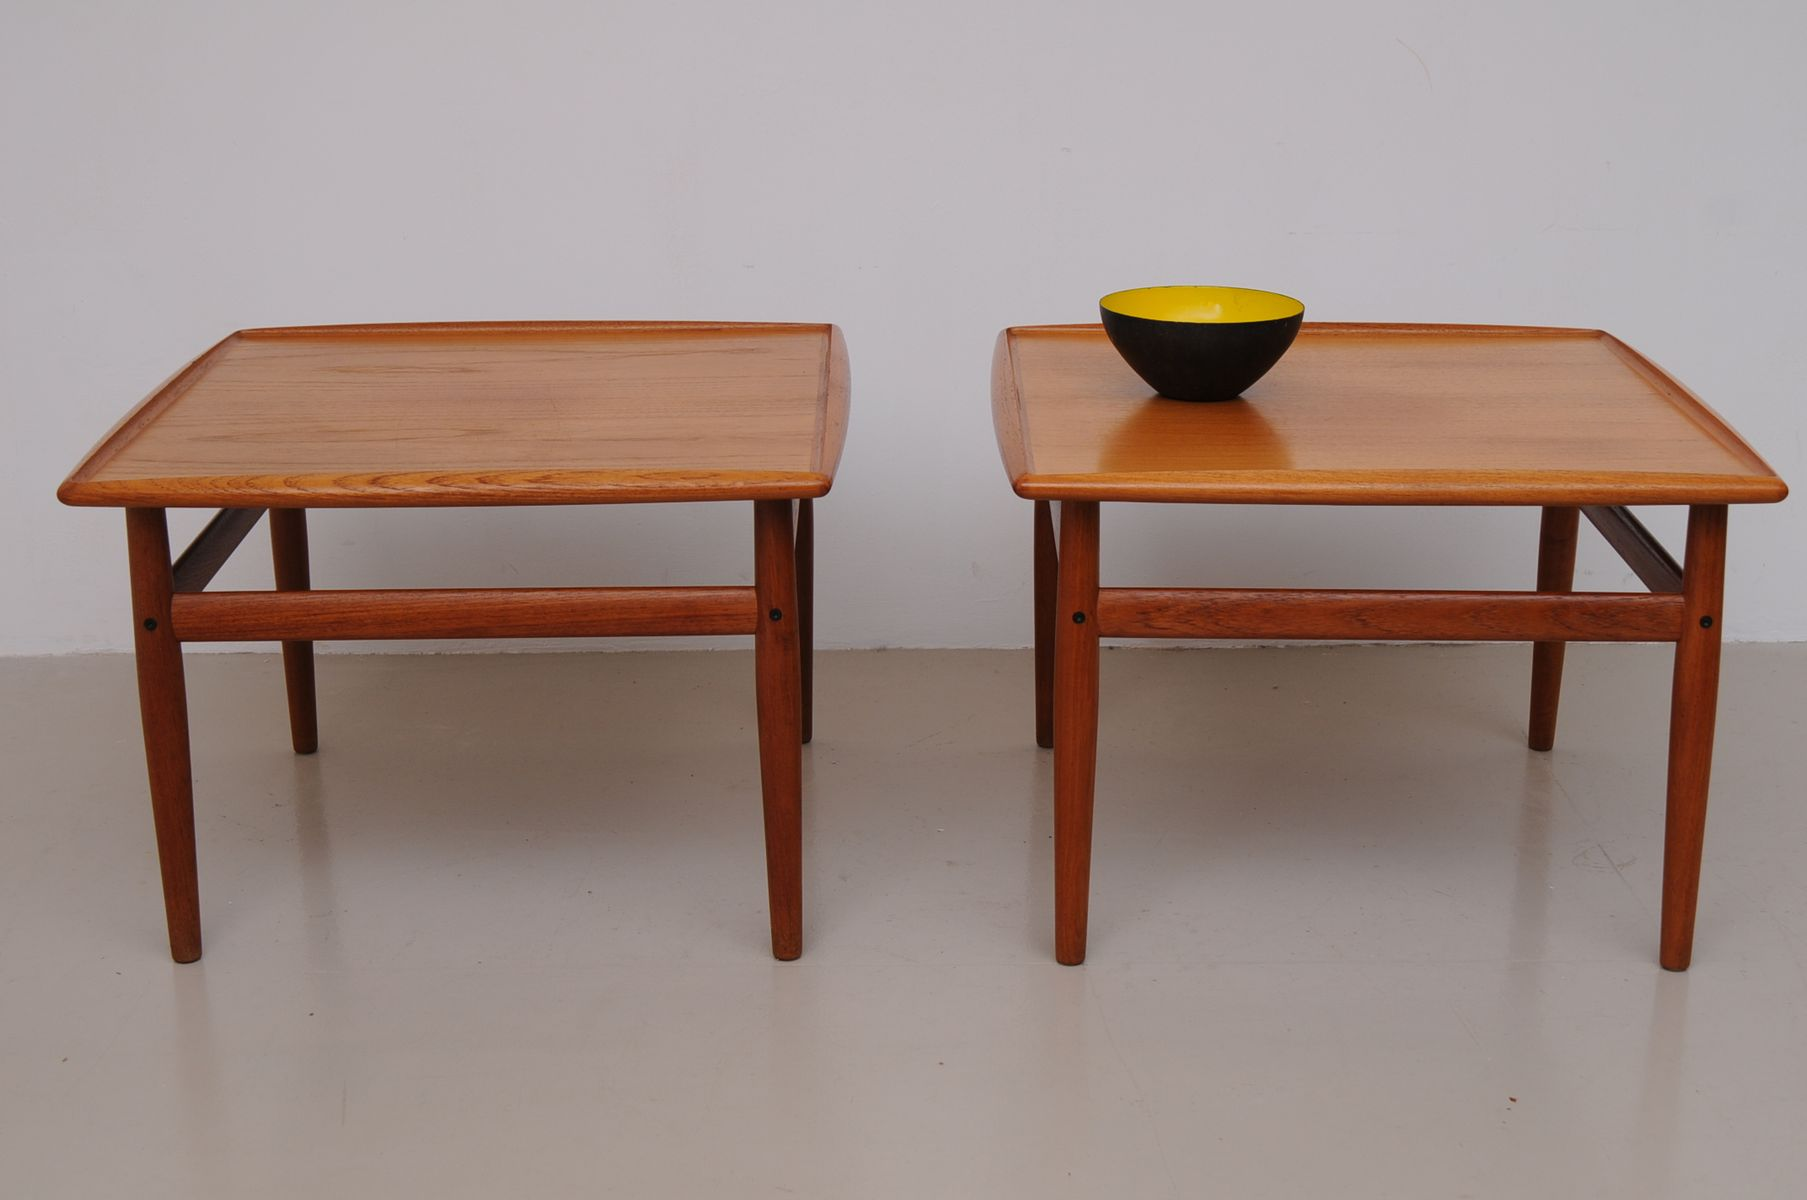 Vintage Coffee Table by Grete Jalk for Glostrup for sale at Pamono